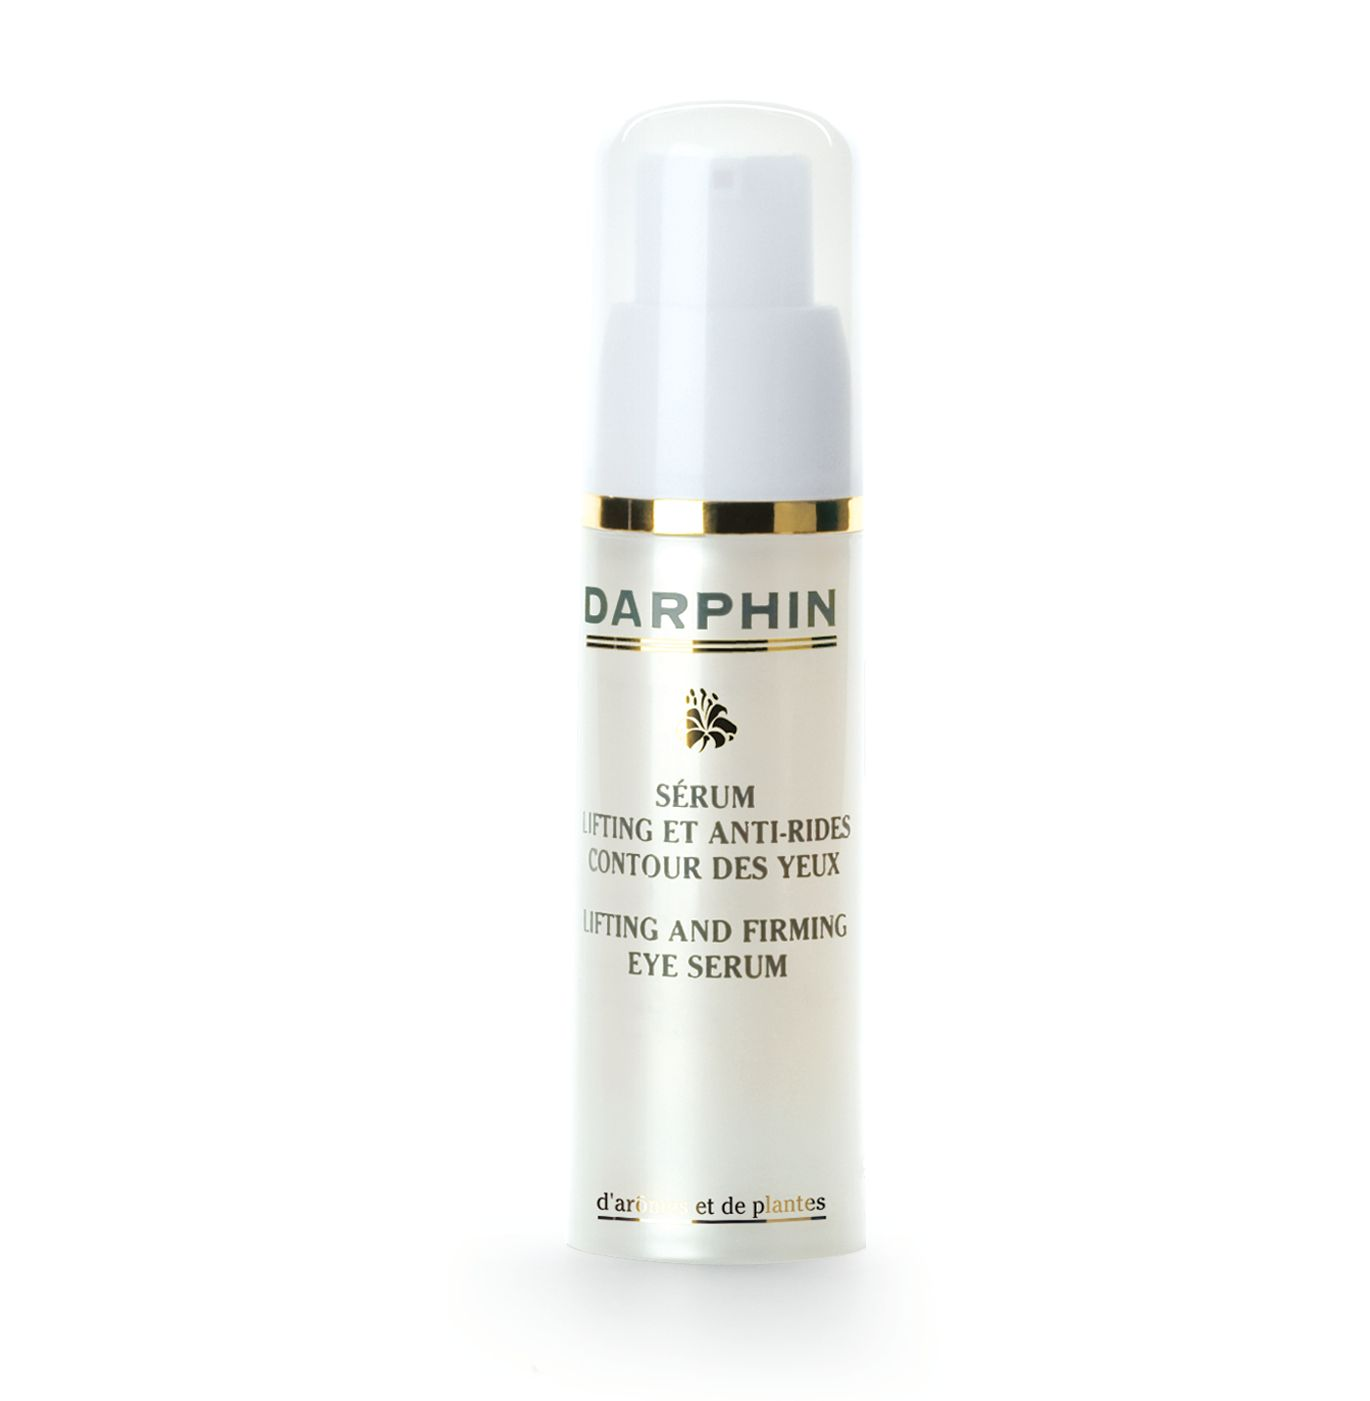 Darphin 15ml lifting and firming eye contour serum